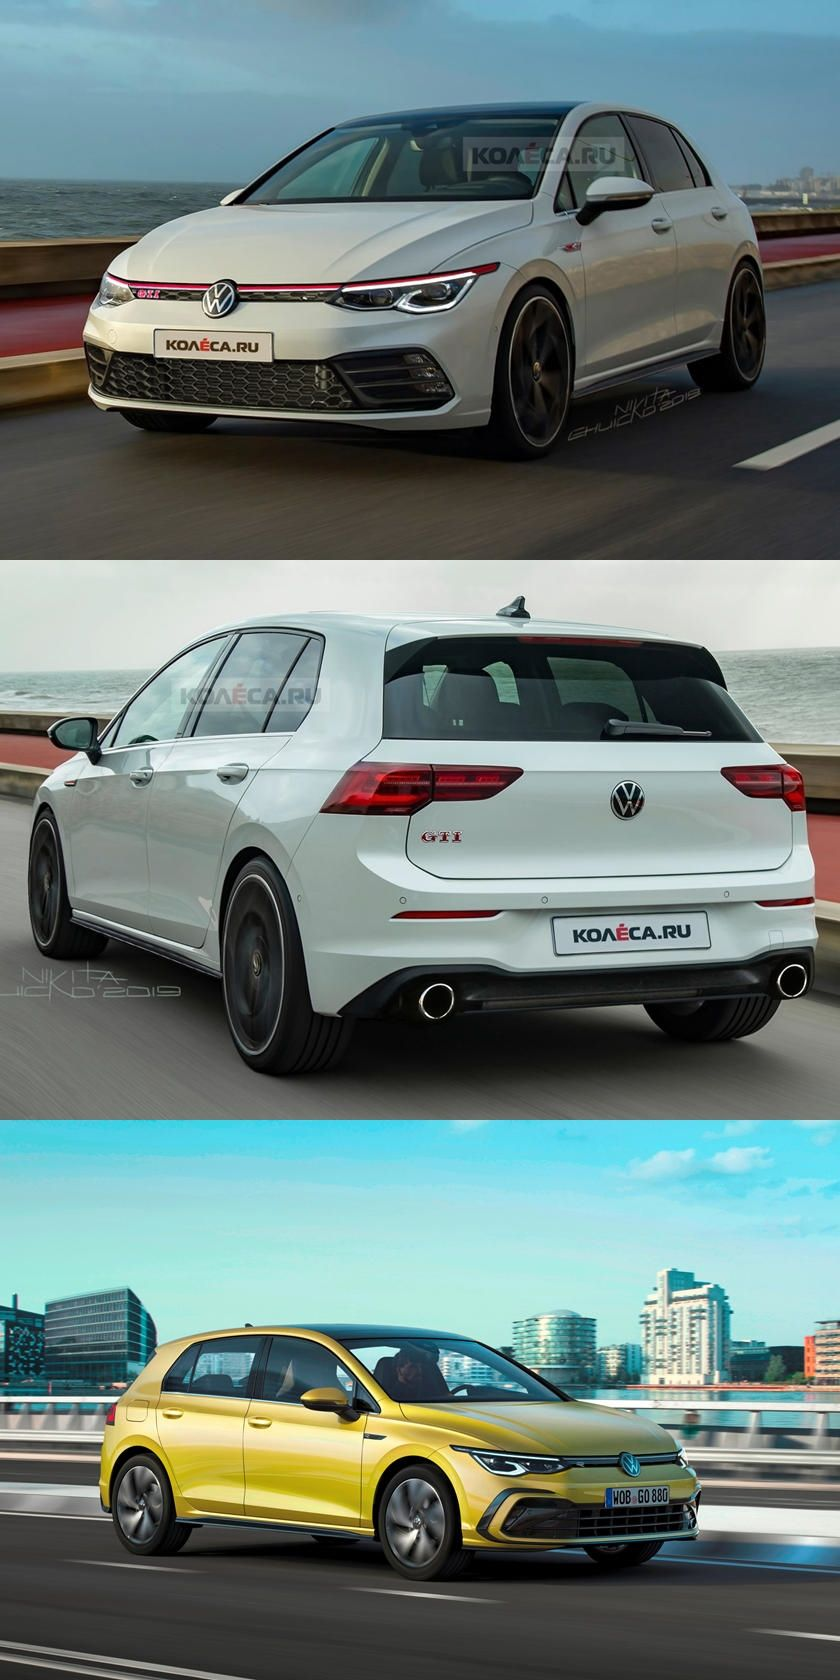 Get Ready For The Next Generation Volkswagen Golf Gti We Now Have A Good Idea What The New Golf Gti Will Look Like Golf Gti Vw Polo Gti Volkswagen